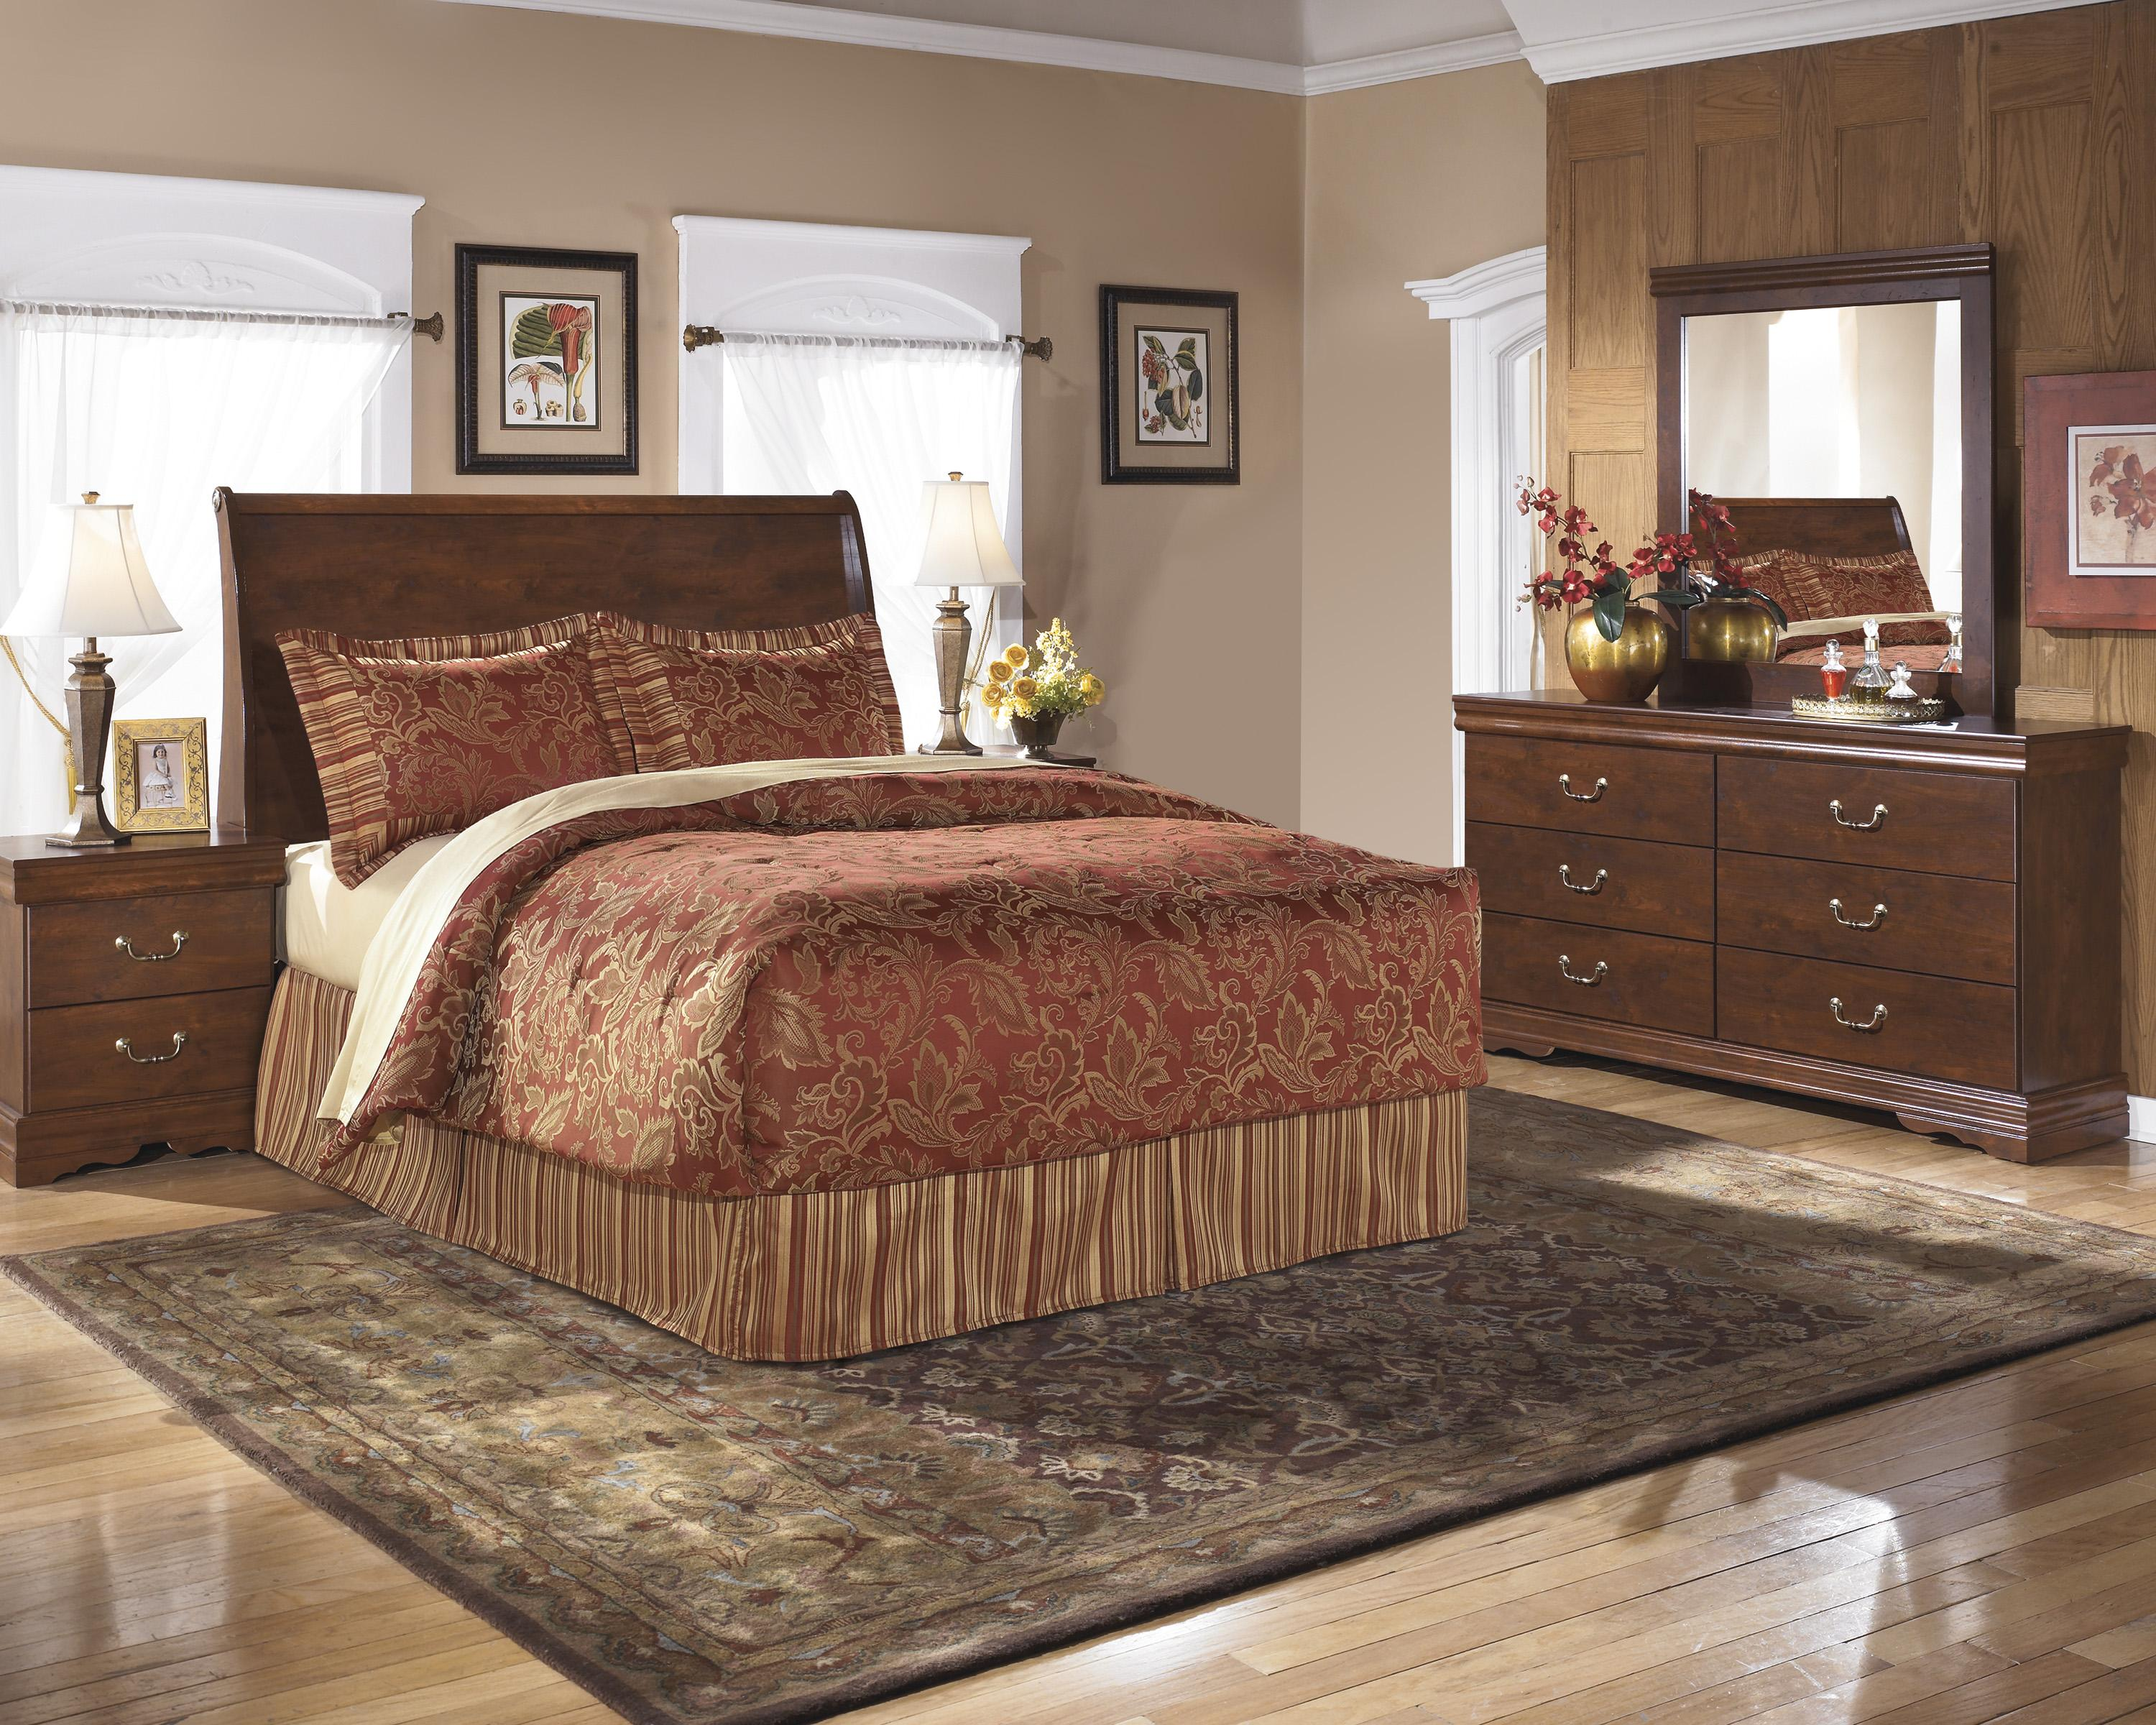 Signature Design by Ashley Wilmington Full Bedroom Group - Item Number: B178 F Bedroom Group 4